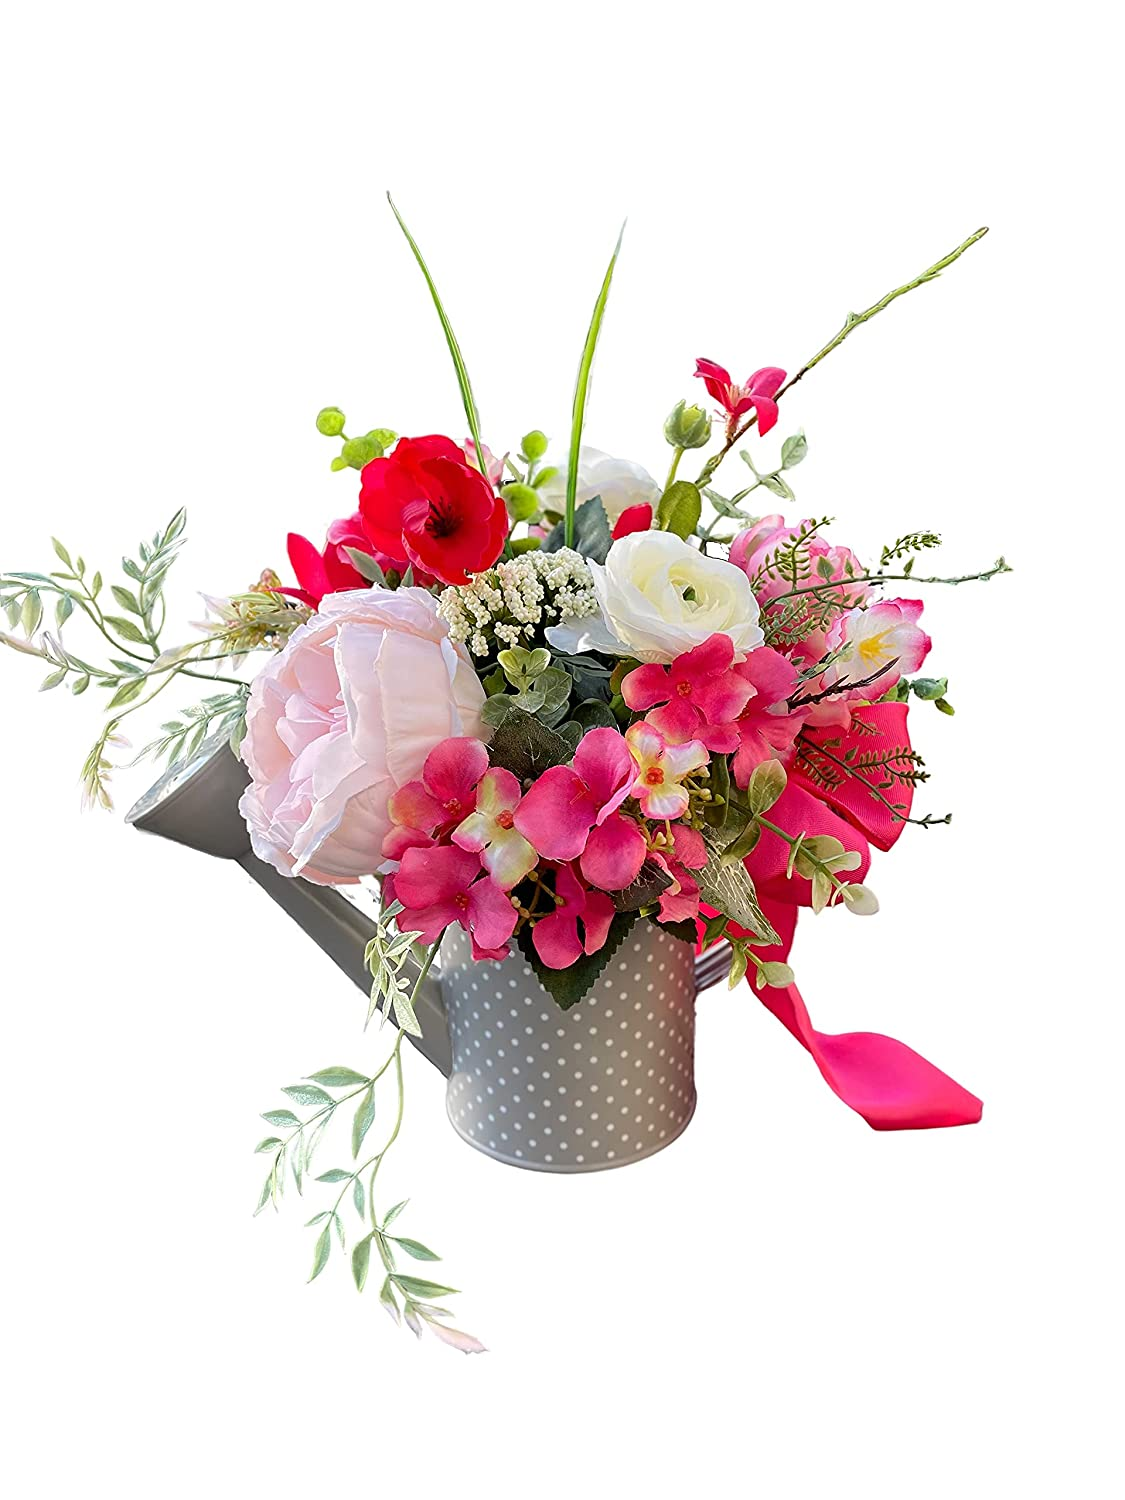 Hot pink Flower Arrangement in Max 62% OFF Tucson Mall Polk-a-Dot Watering Ca Grey White